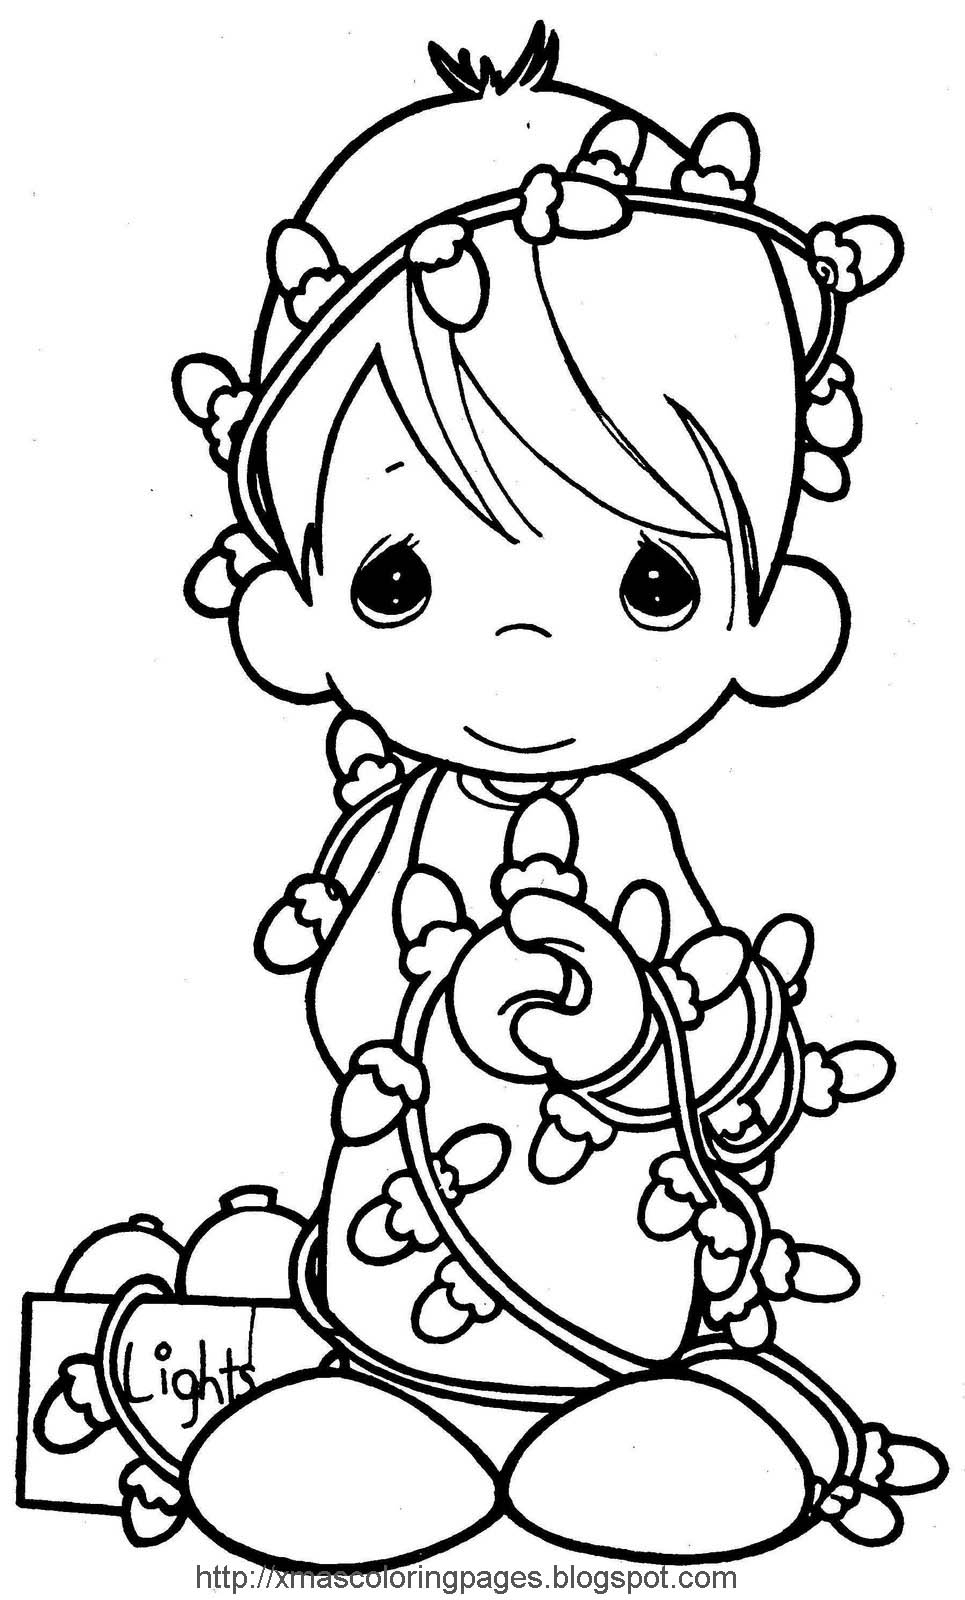 free printable coloring pages christmas learn to coloring april 2011 pages free christmas coloring printable